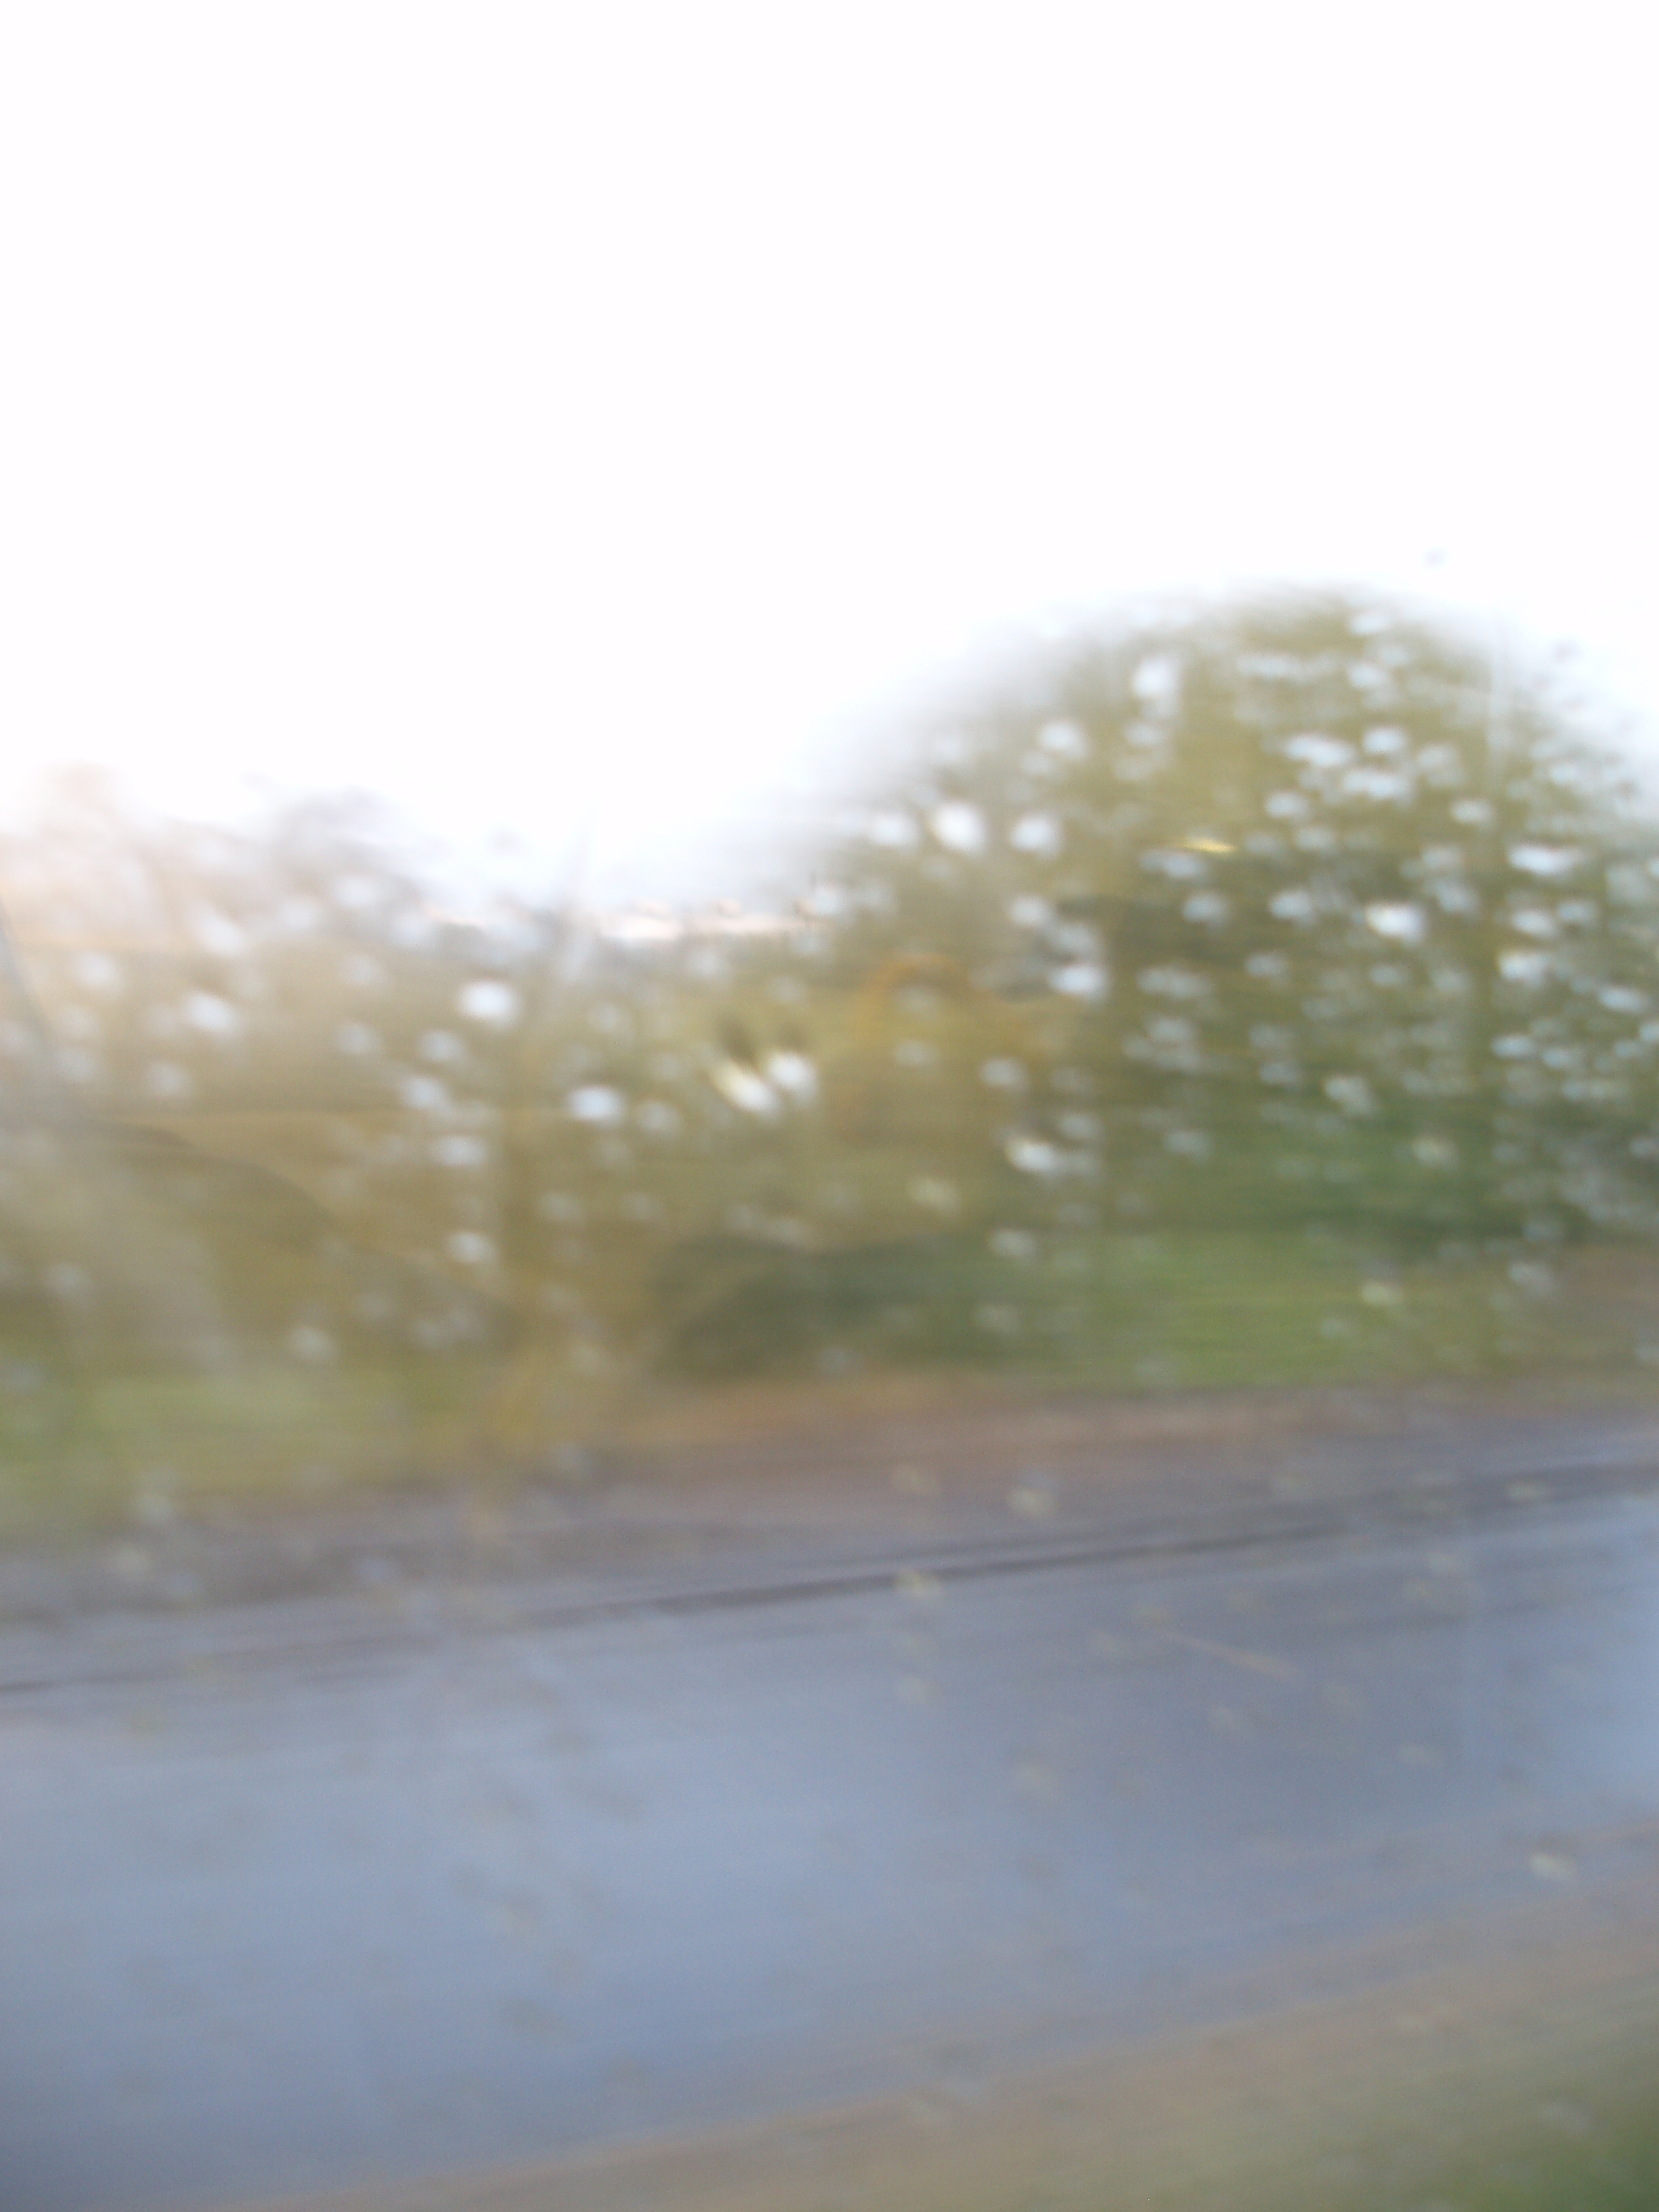 rain on a misted up window and a road outside